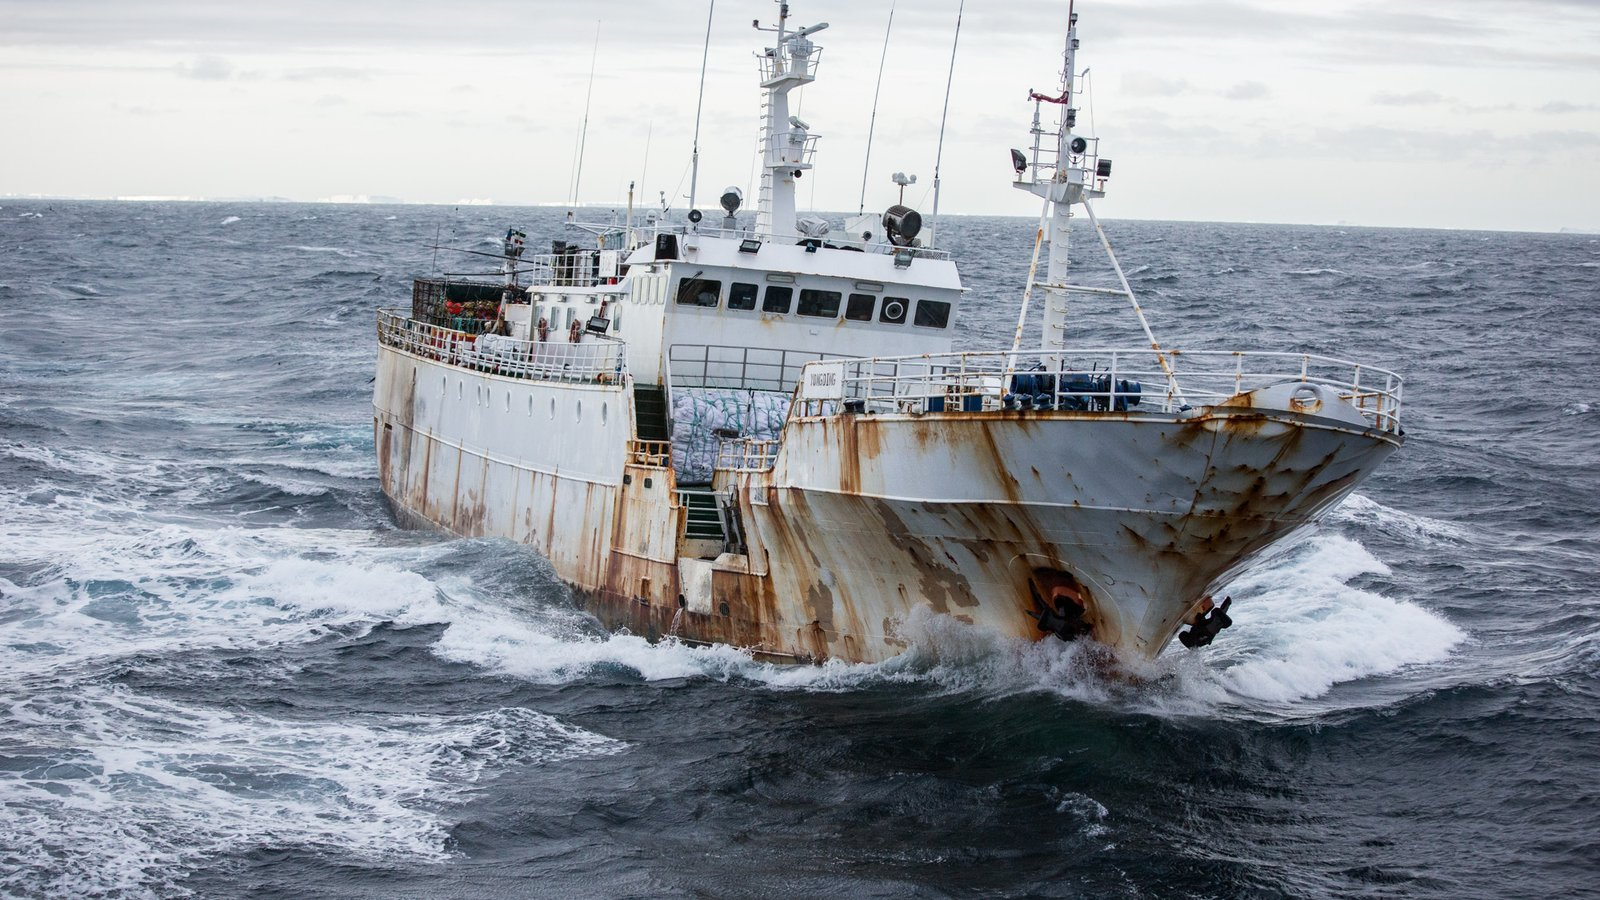 Thwarted Again: Poaching Vessels Still Stuck in Cabo Verde Port after 2015 Arrest